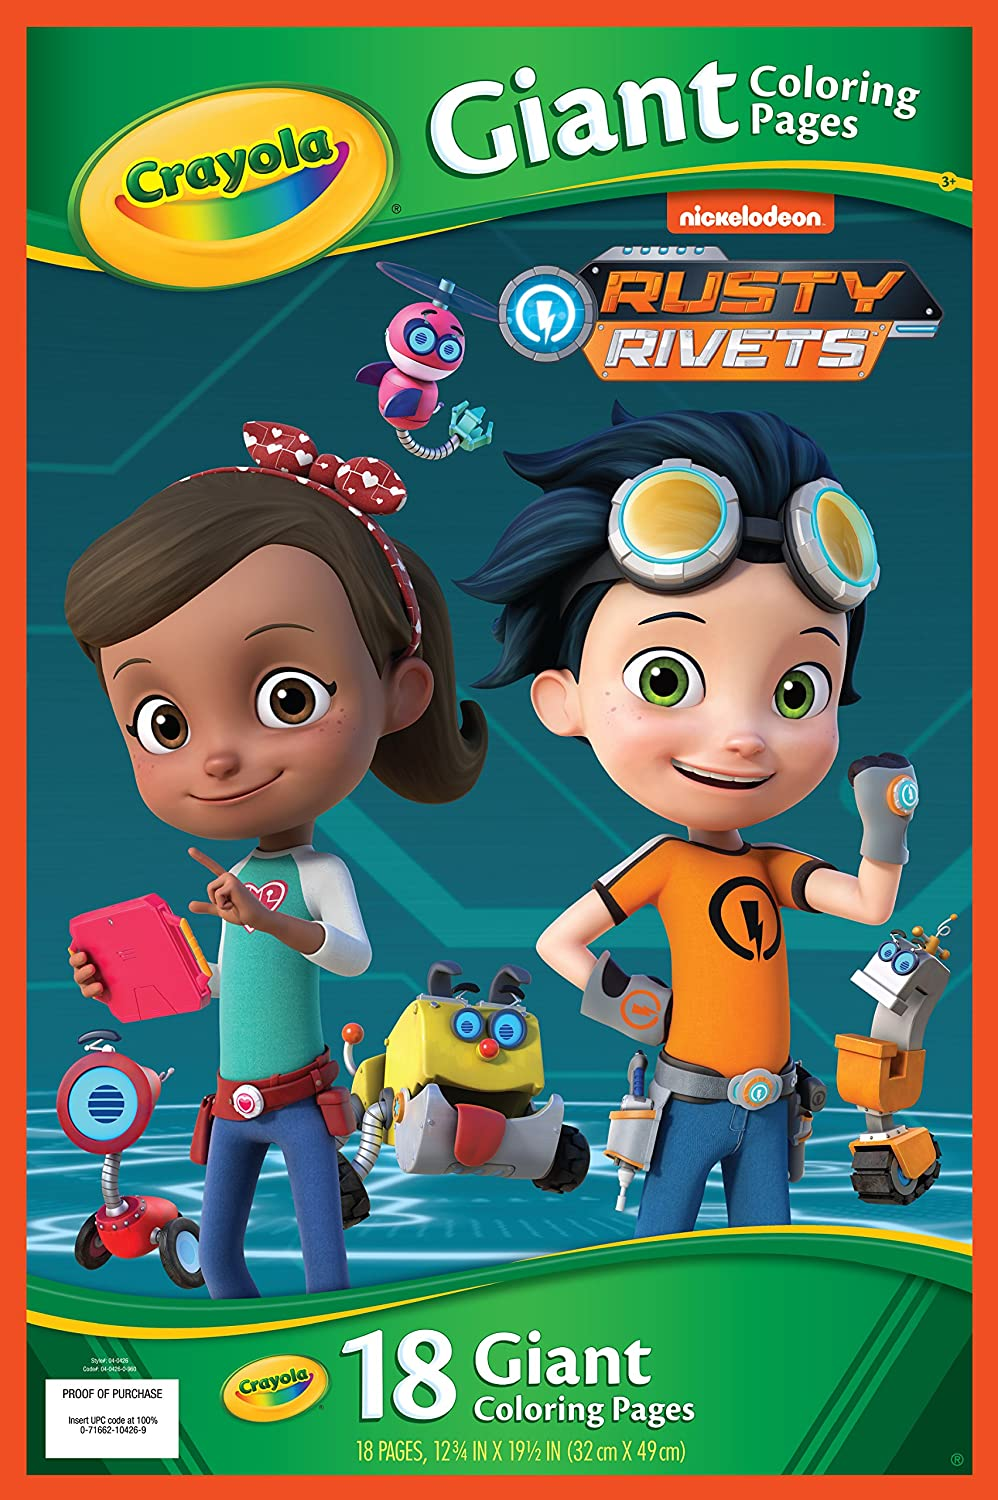 Crayola rusty rivets 18 giant coloring pages gift for kids 3 4 5 6 red